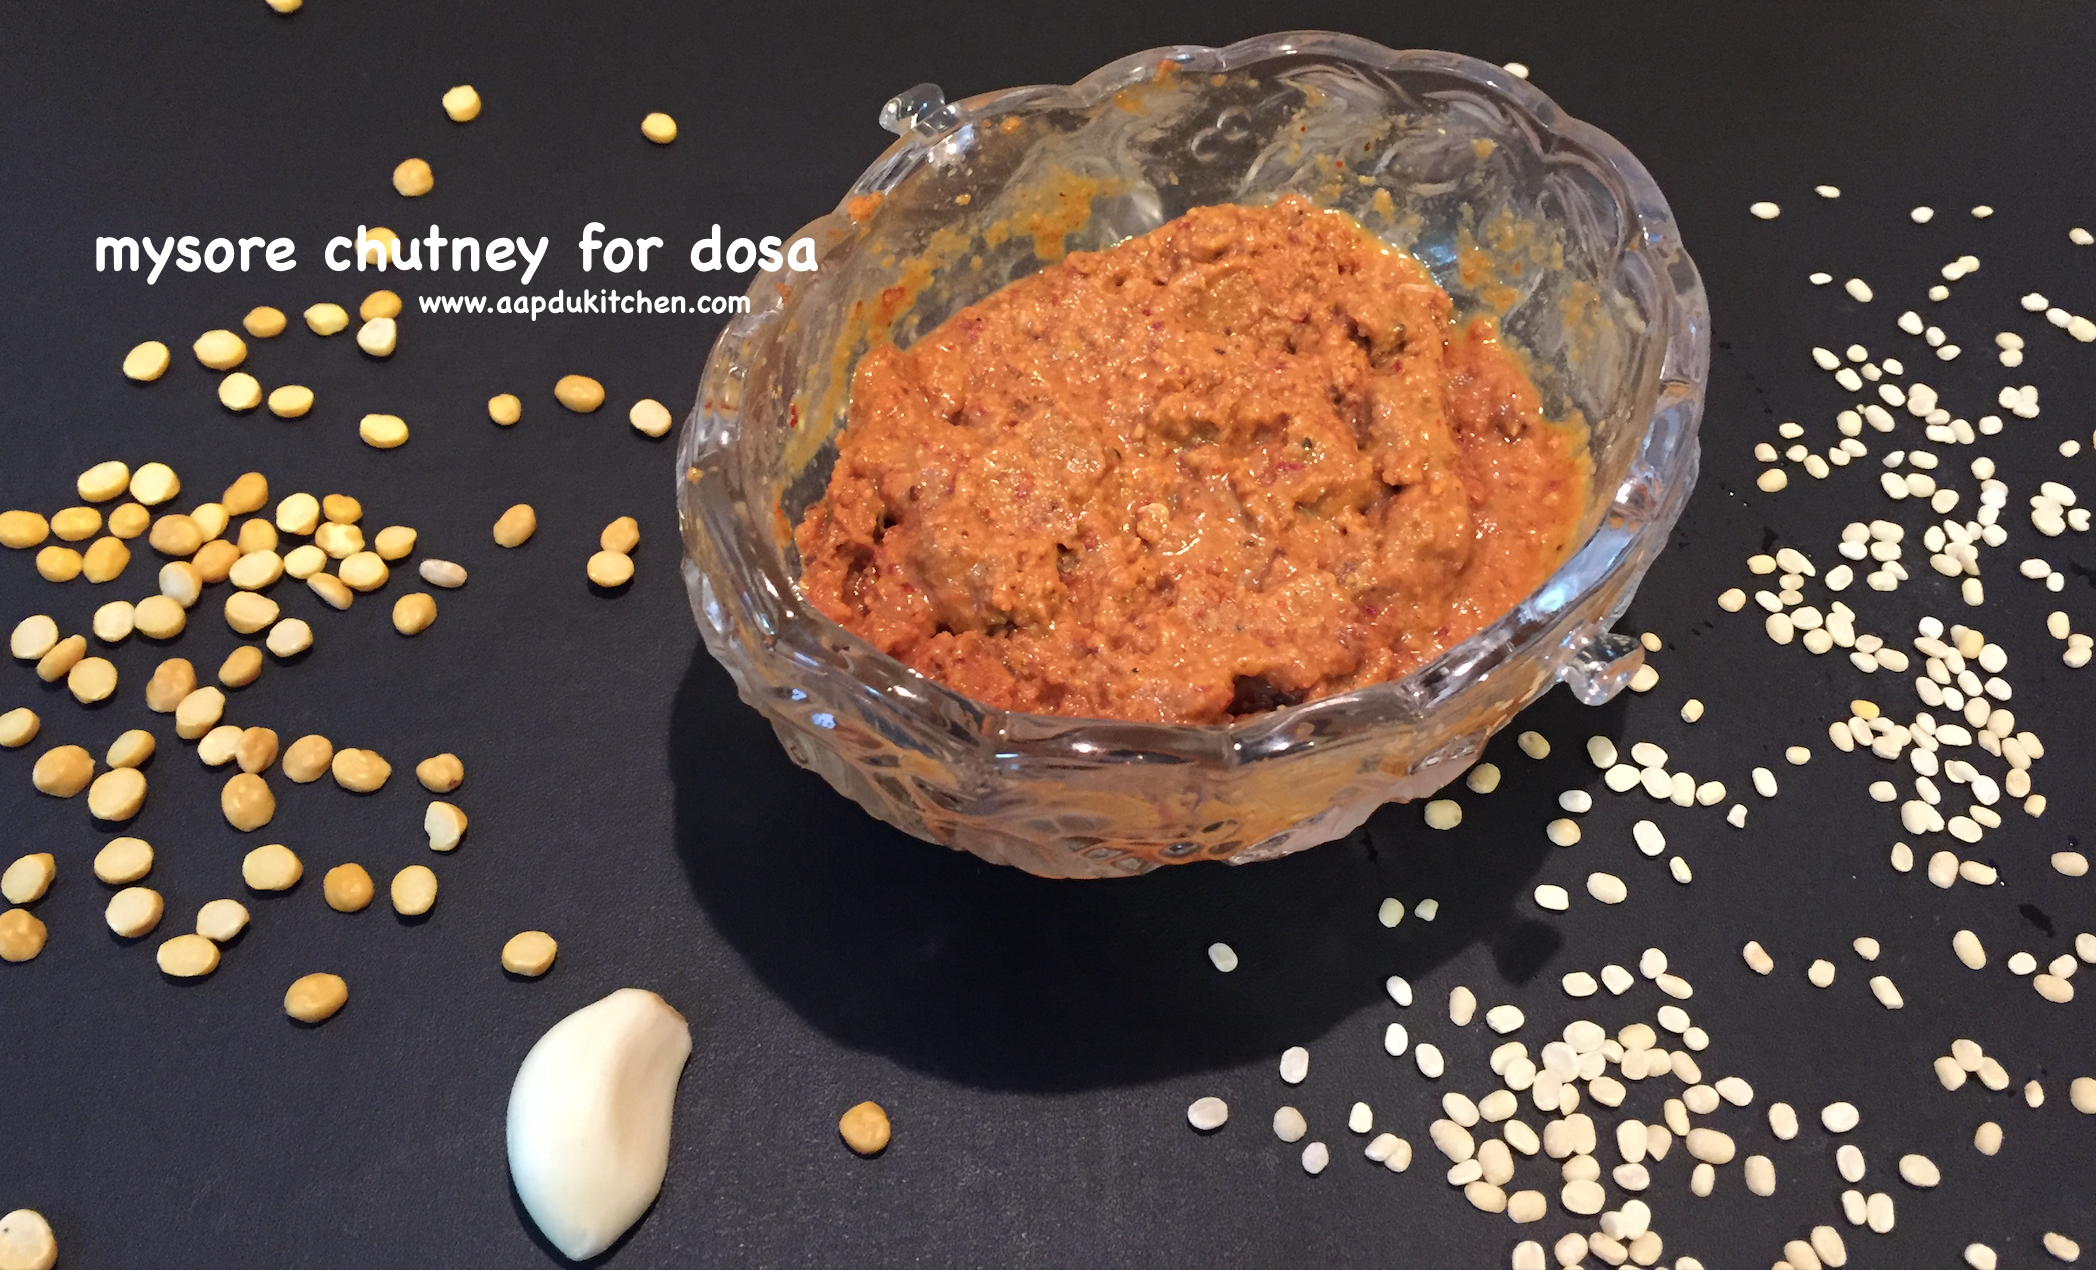 Sweet potato chutney recipe genasina chutney recipe